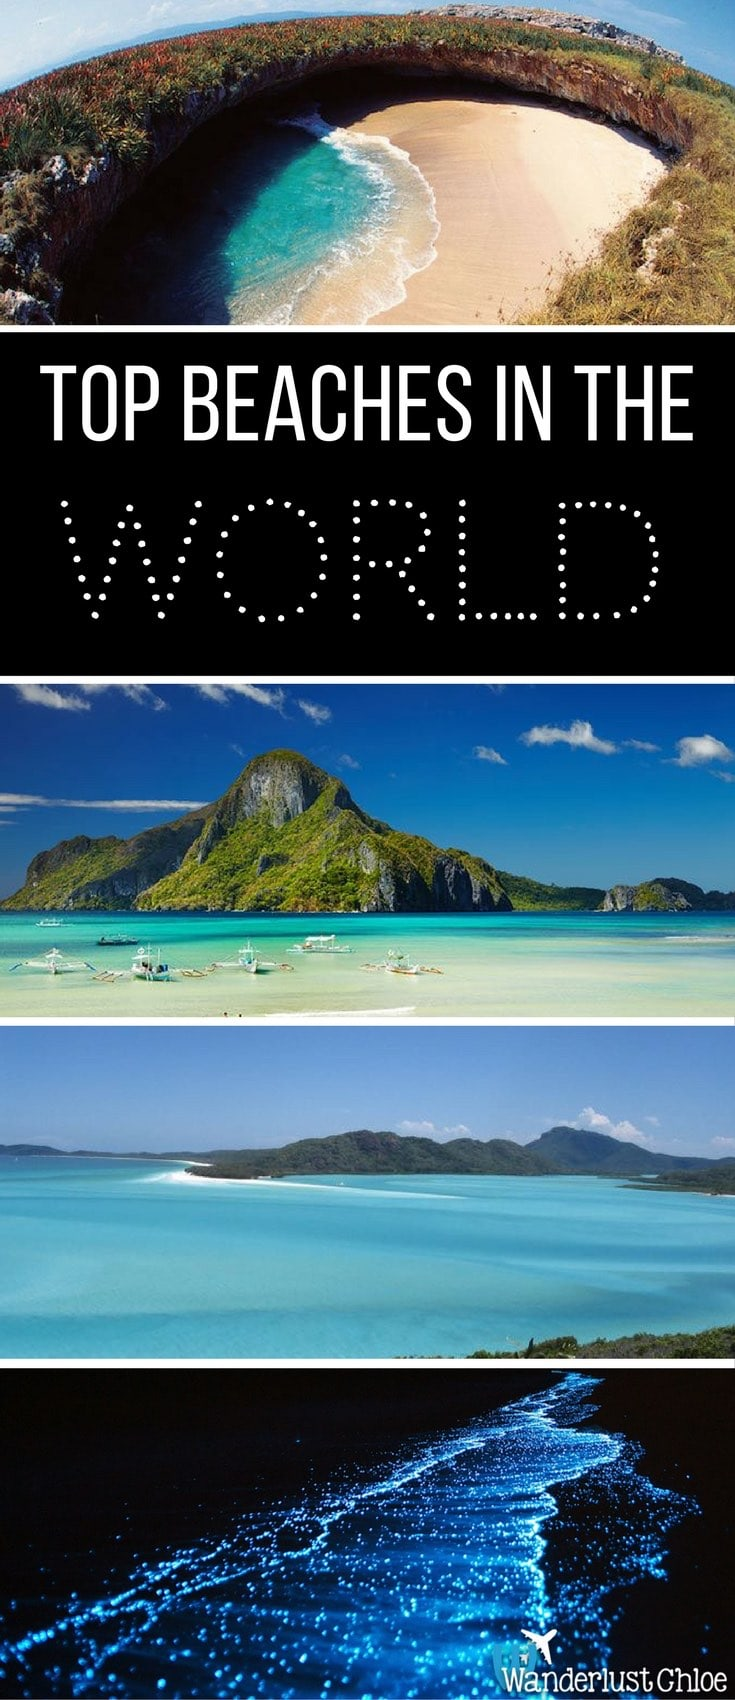 World 39 s top 9 amazing beaches for wanderlusters for Top 1 beach in the world